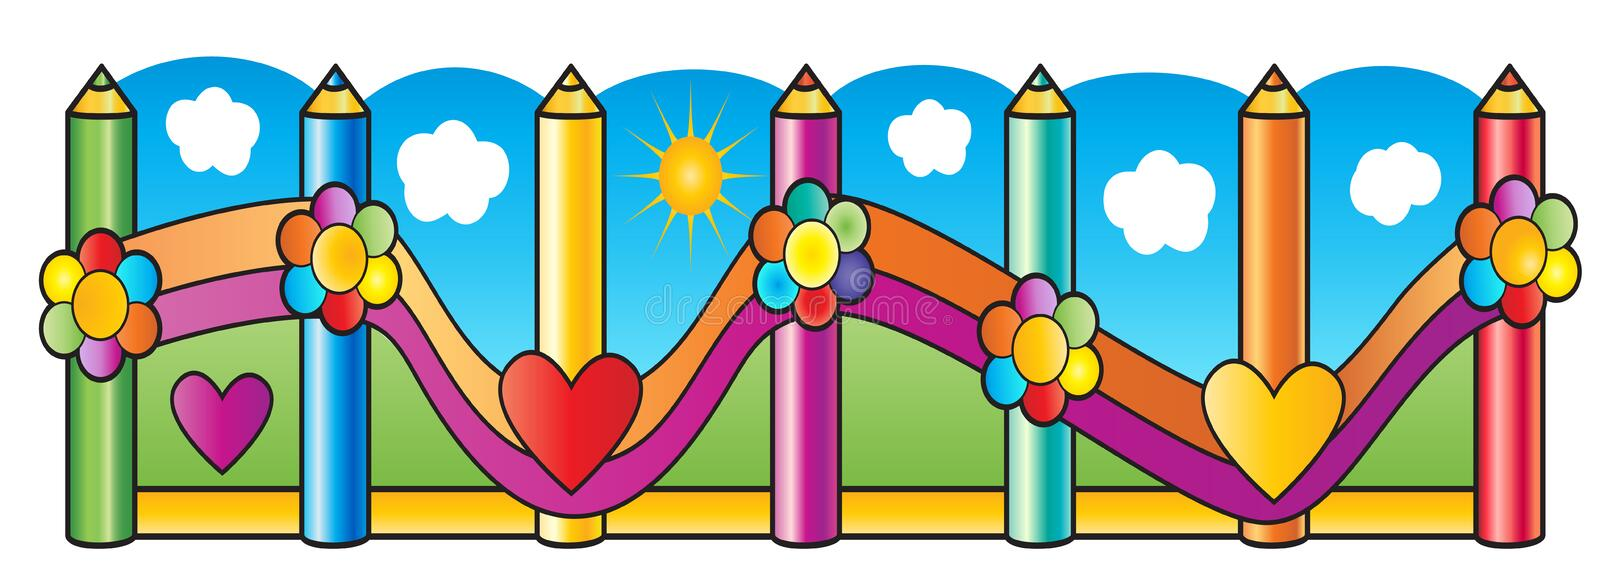 Fence Pencils school. Fence pencils, kids playground, preschool. Back to school. Wooden fence of colorful pencils decorated with flowers, hearts, grass. Cartoon stock illustration